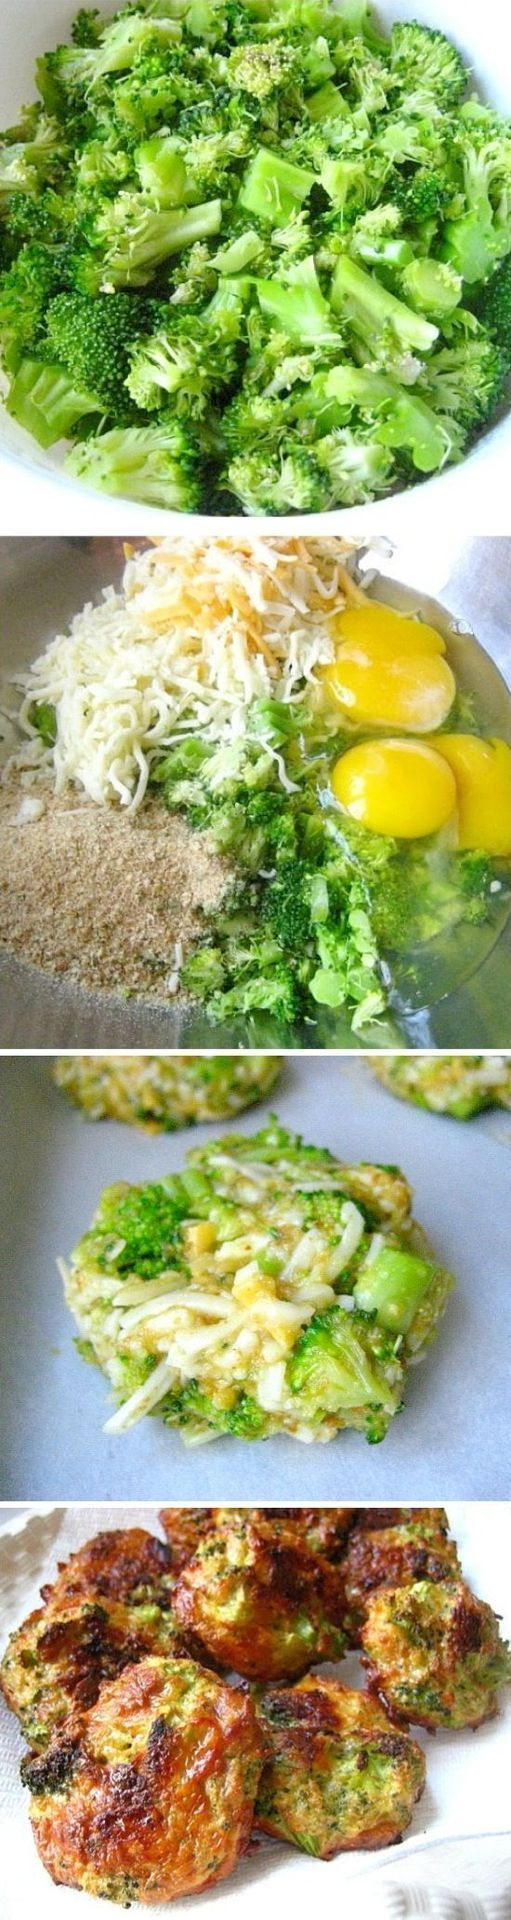 Broccoli Cheese Bites- no carbs and so yummy!